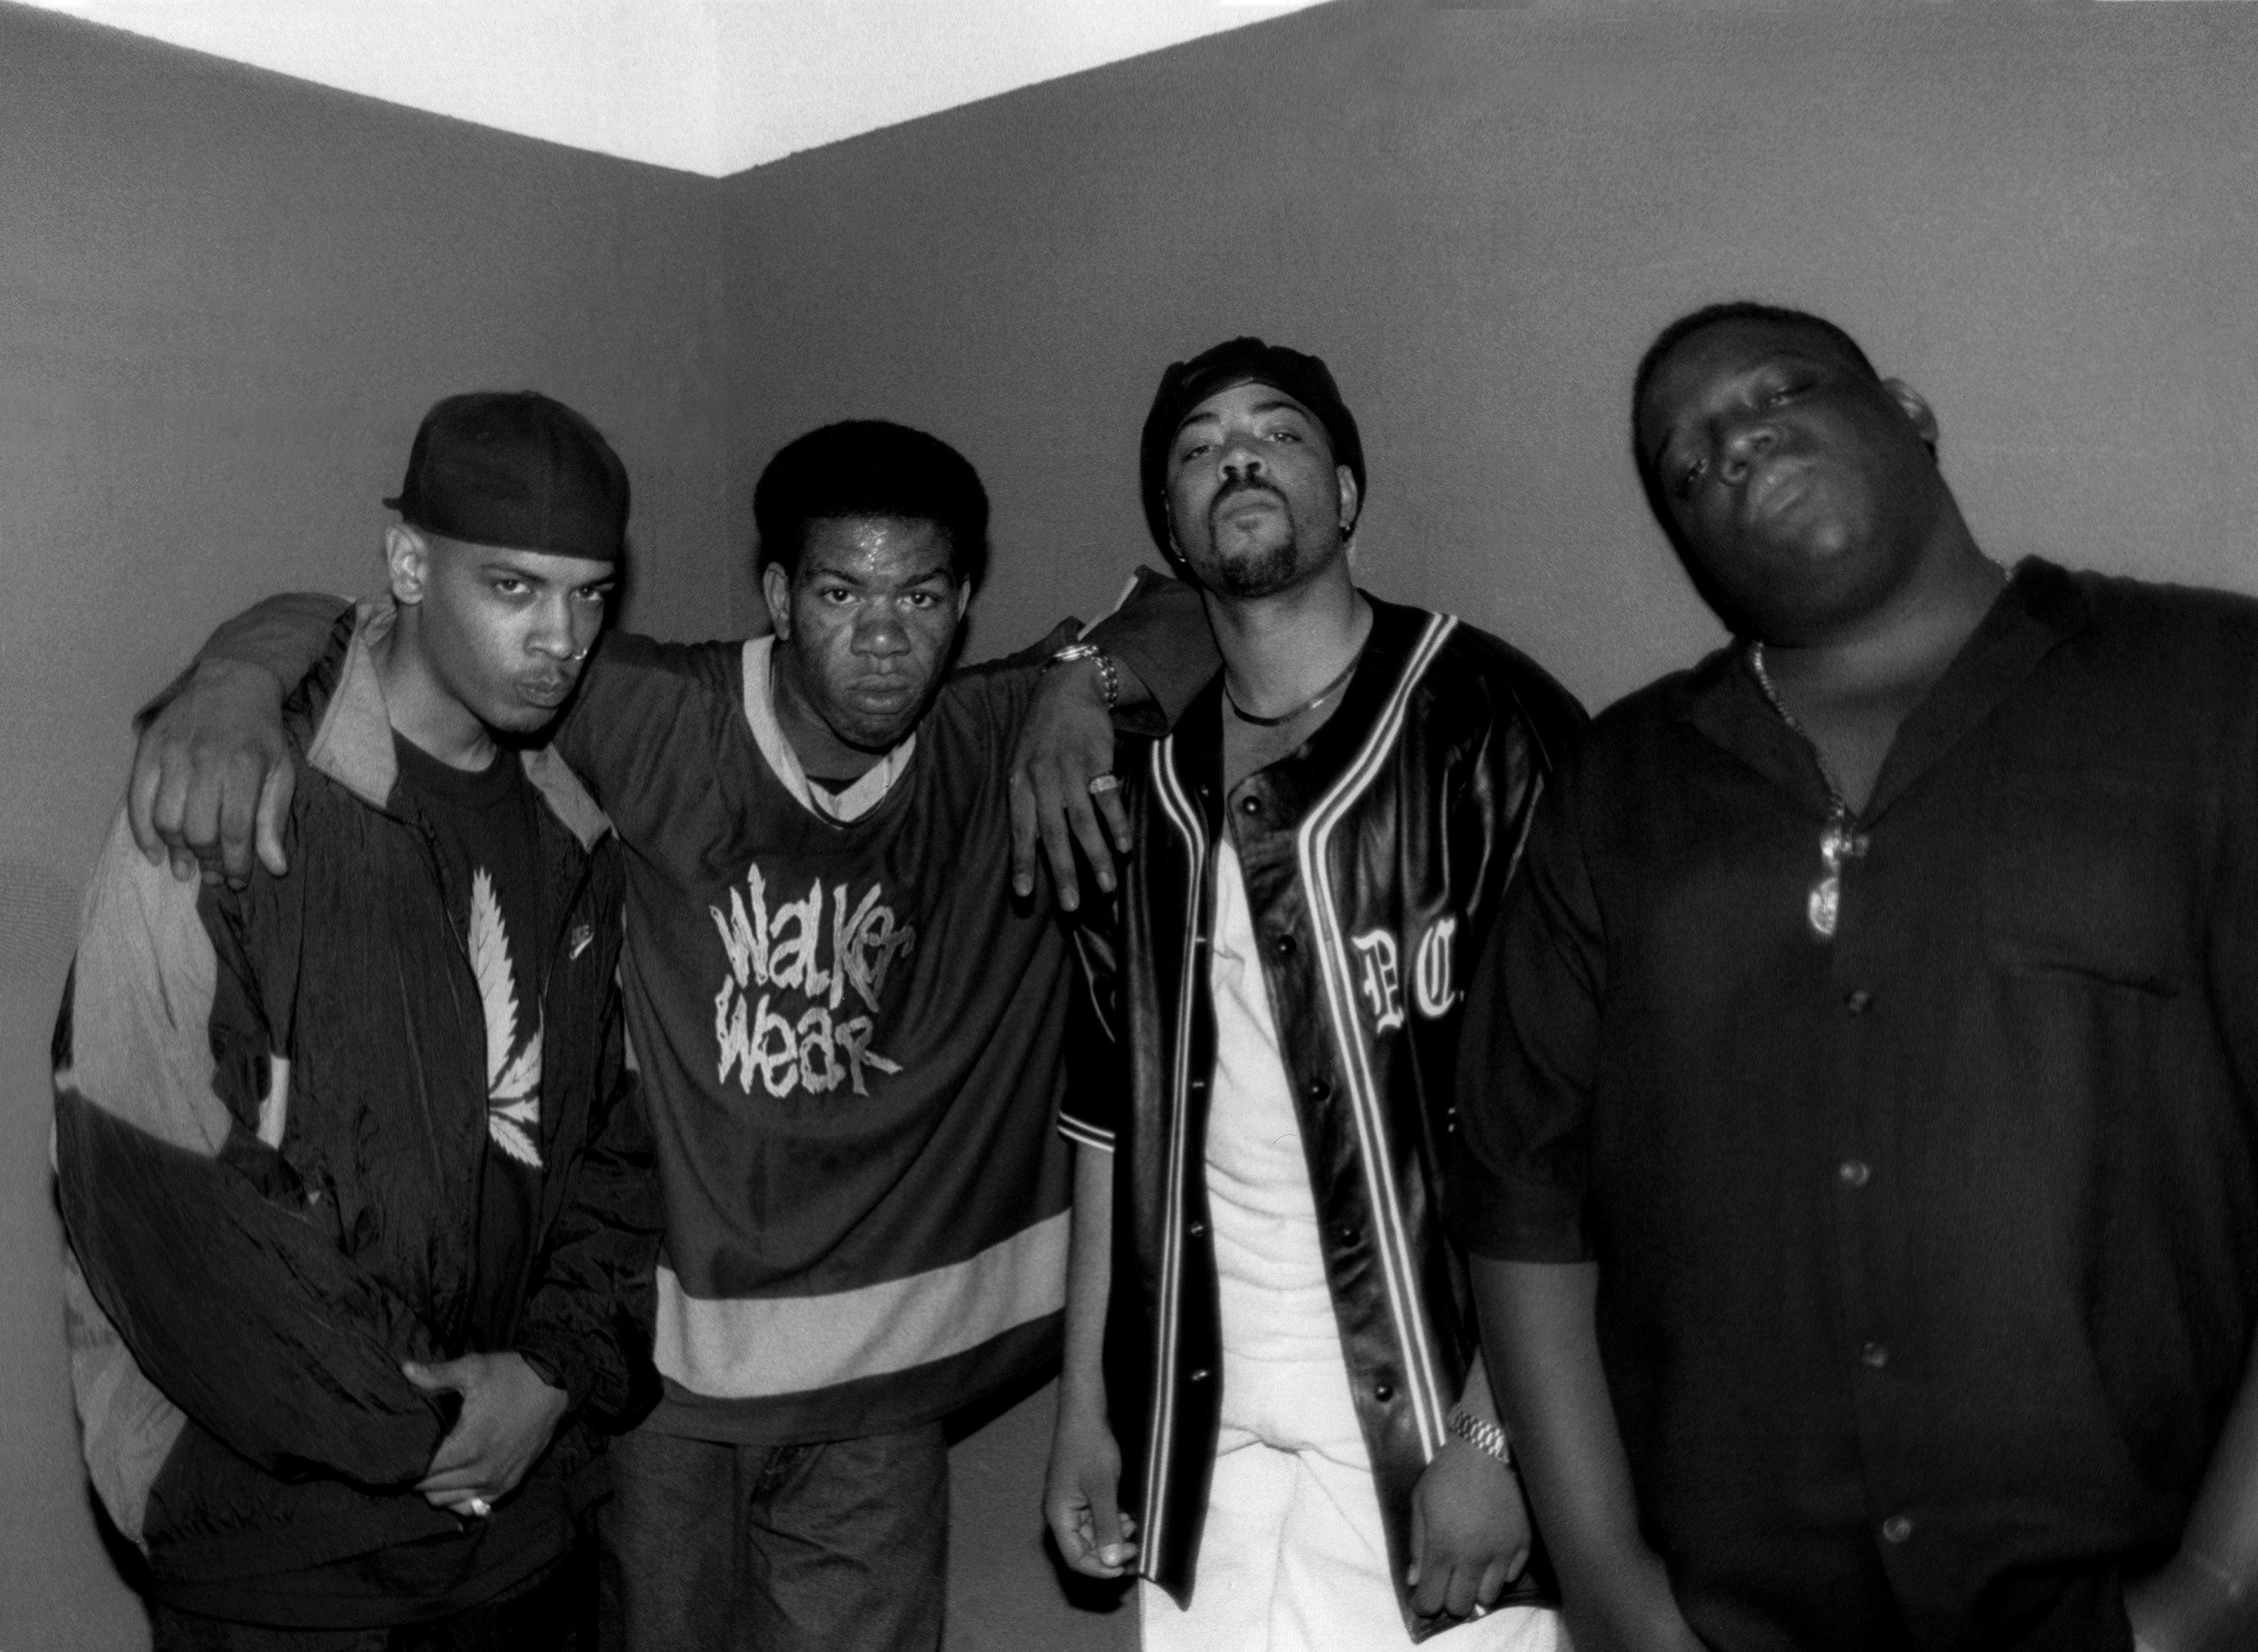 Rappers Saafir, Craig Mack, The D.O.C. and late rapper Notorious B.I.G., pose for photos backstage after their performances in 1994